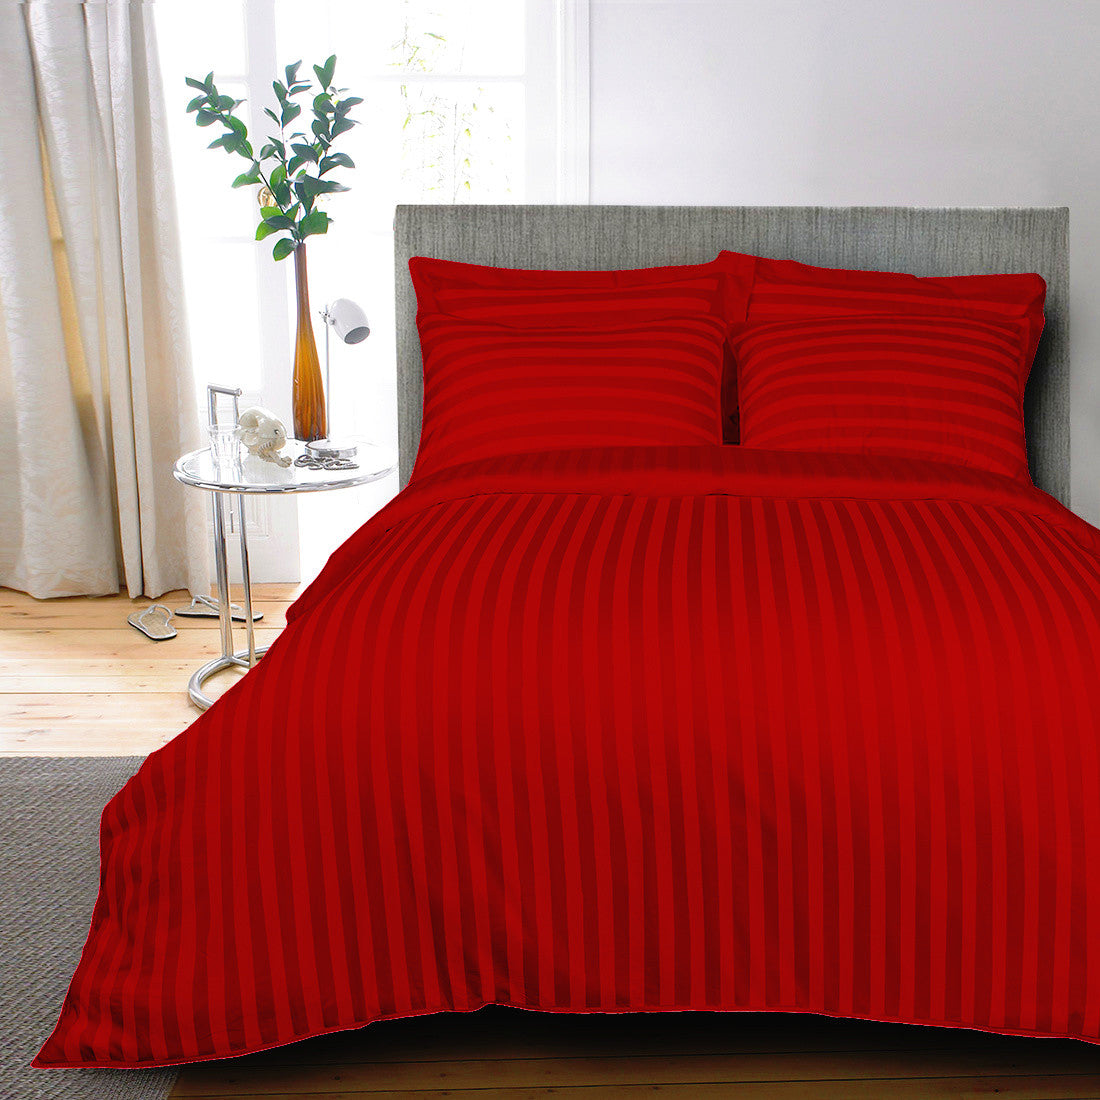 cover with through red covers duvet vanity decorate your how bedroom to